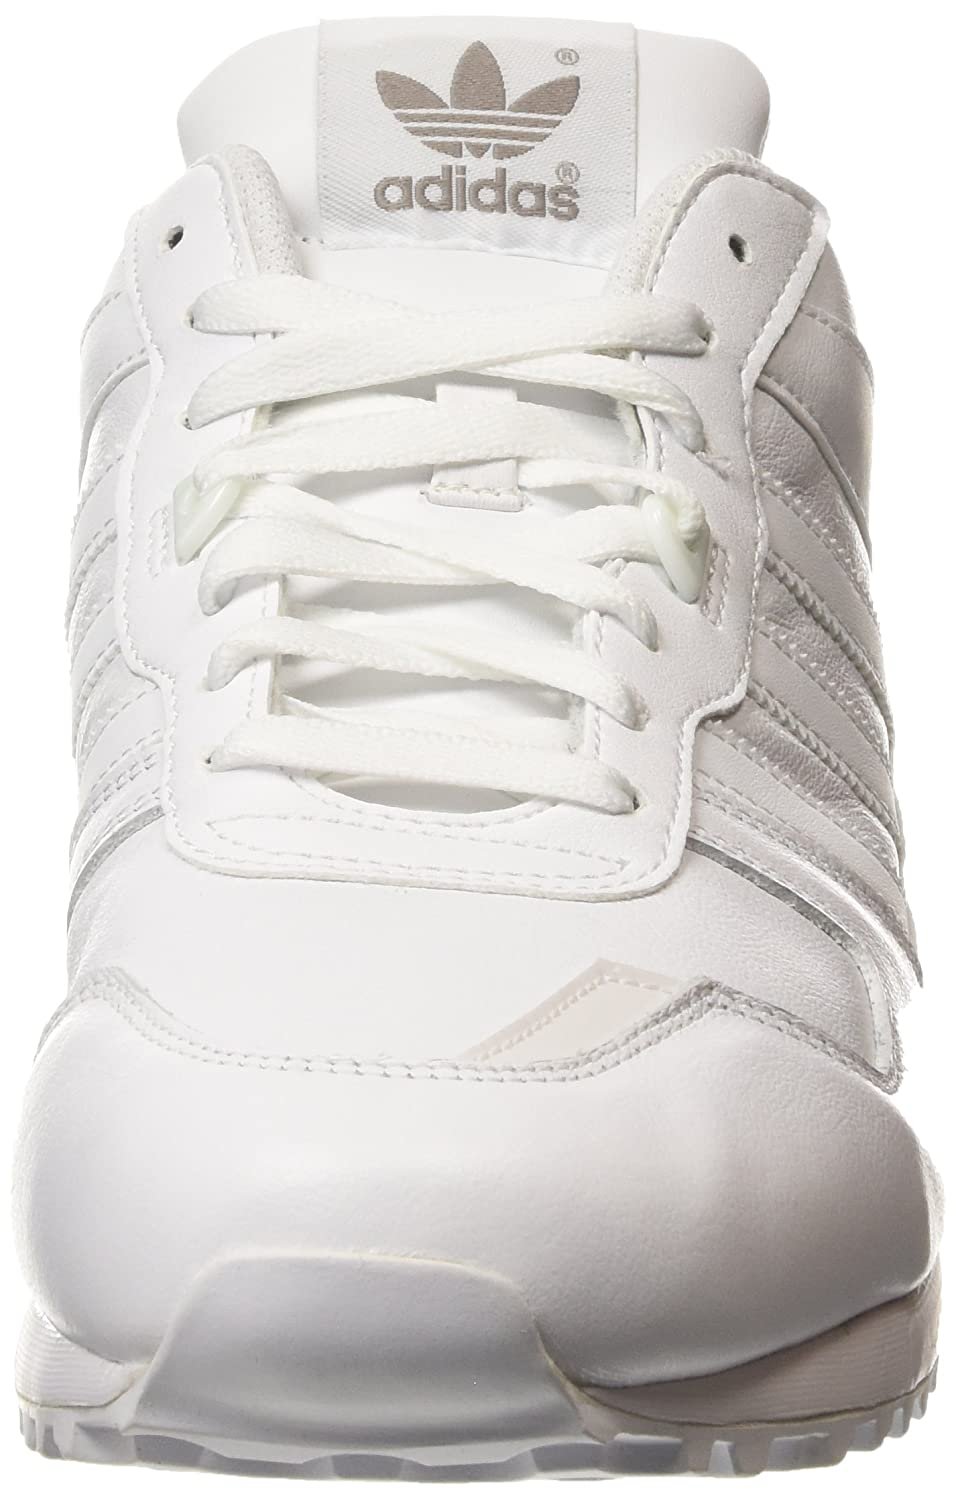 2ac888a66f0c6 adidas Unisex Adults  Zx 700 Running Shoes White Aluminum